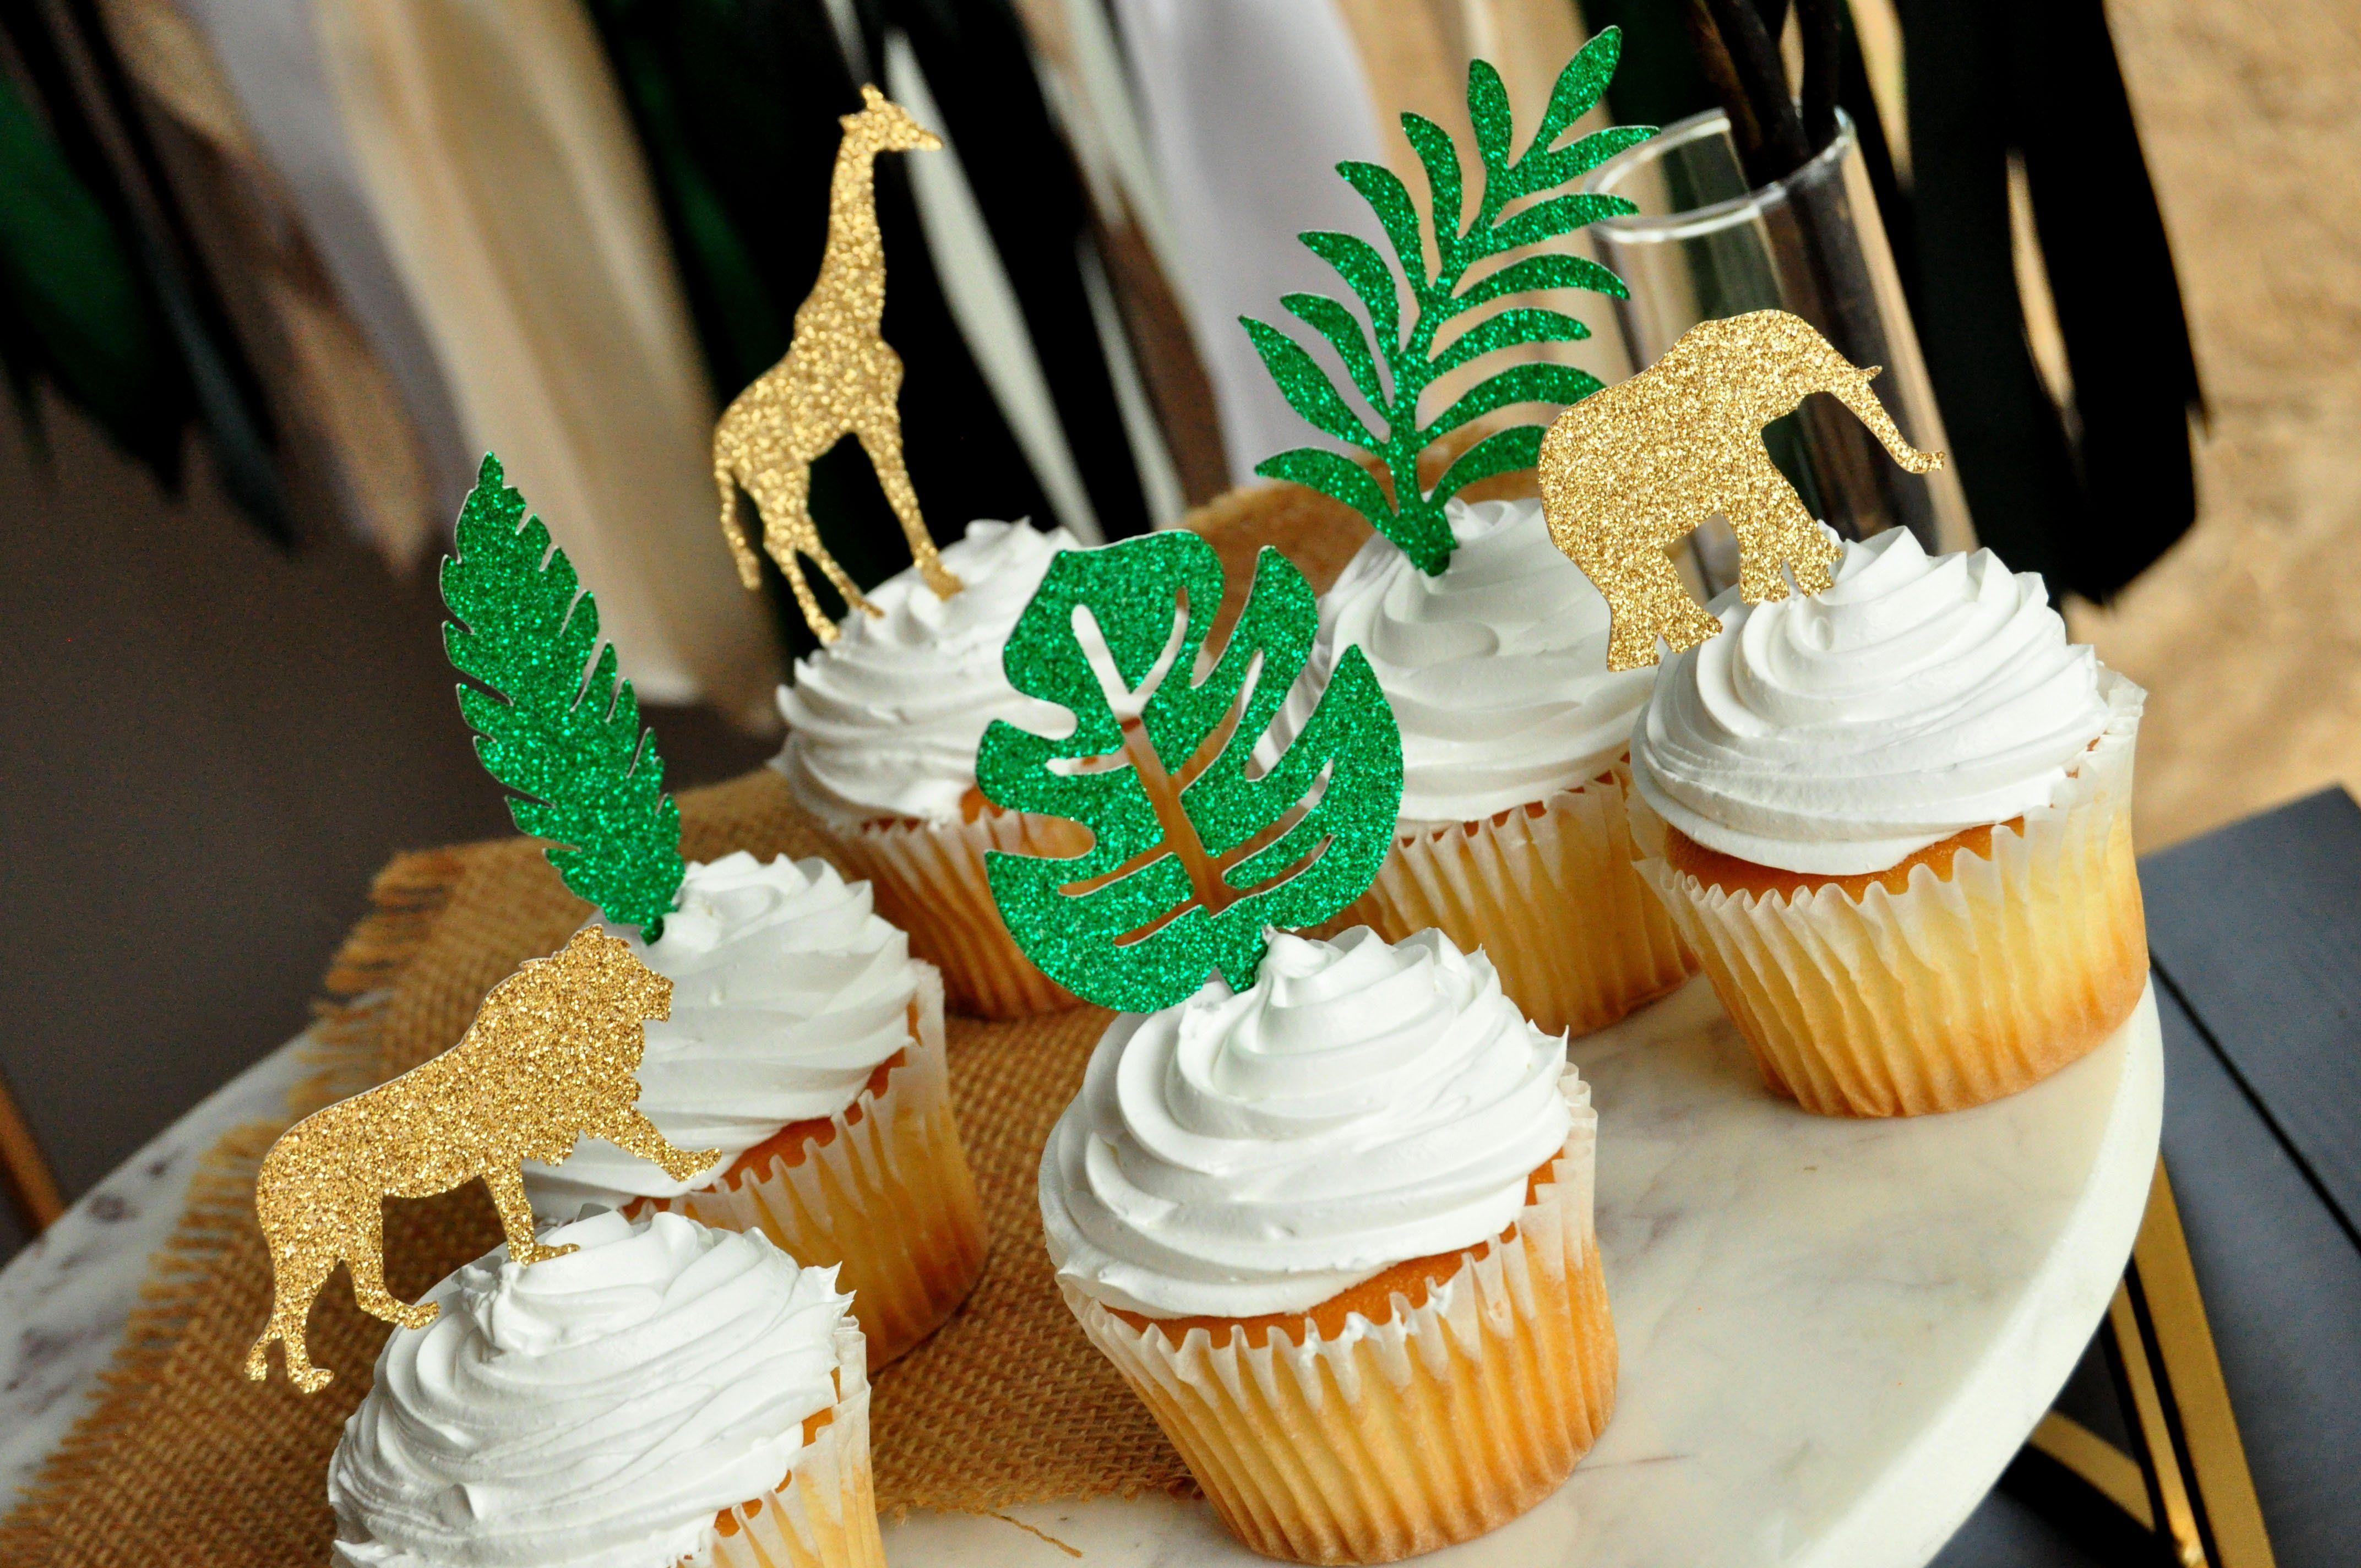 12 Wild One Gold Food Toppers Wild Safari Birthday Party Cupcake Toppers Baby Shower Safari Jungle Party Animals with Hats Cupcake Picks